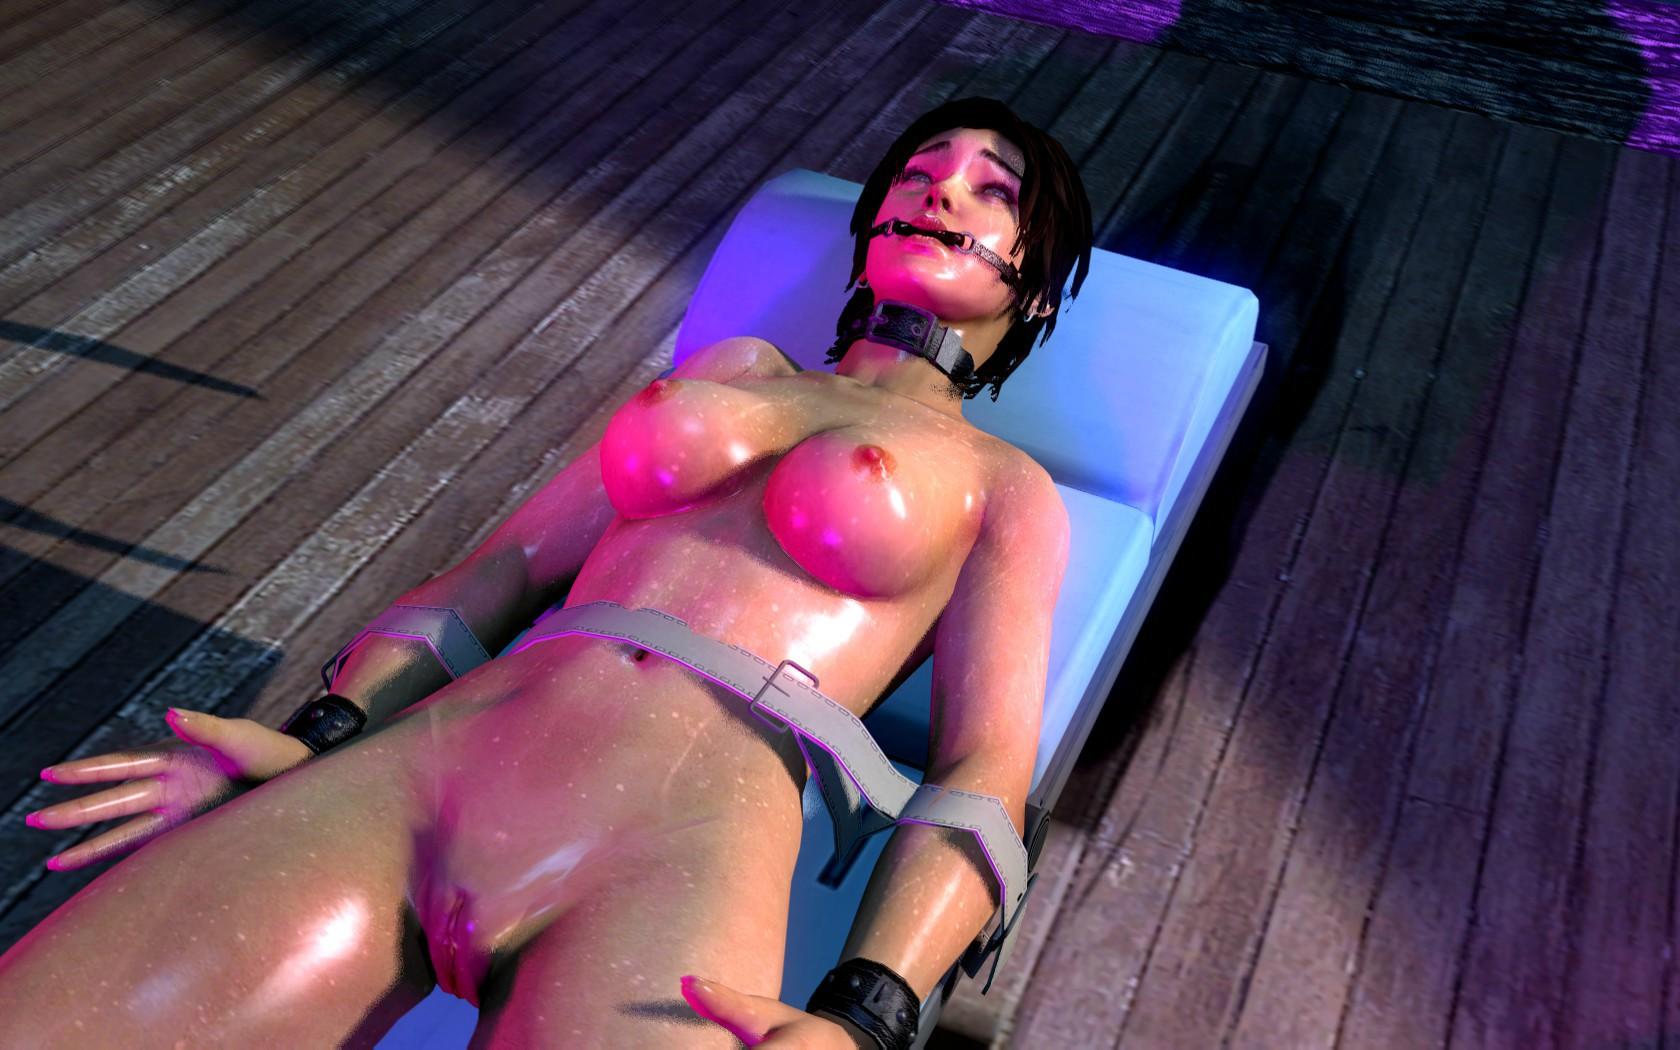 Lara croft pussy photos adult comic